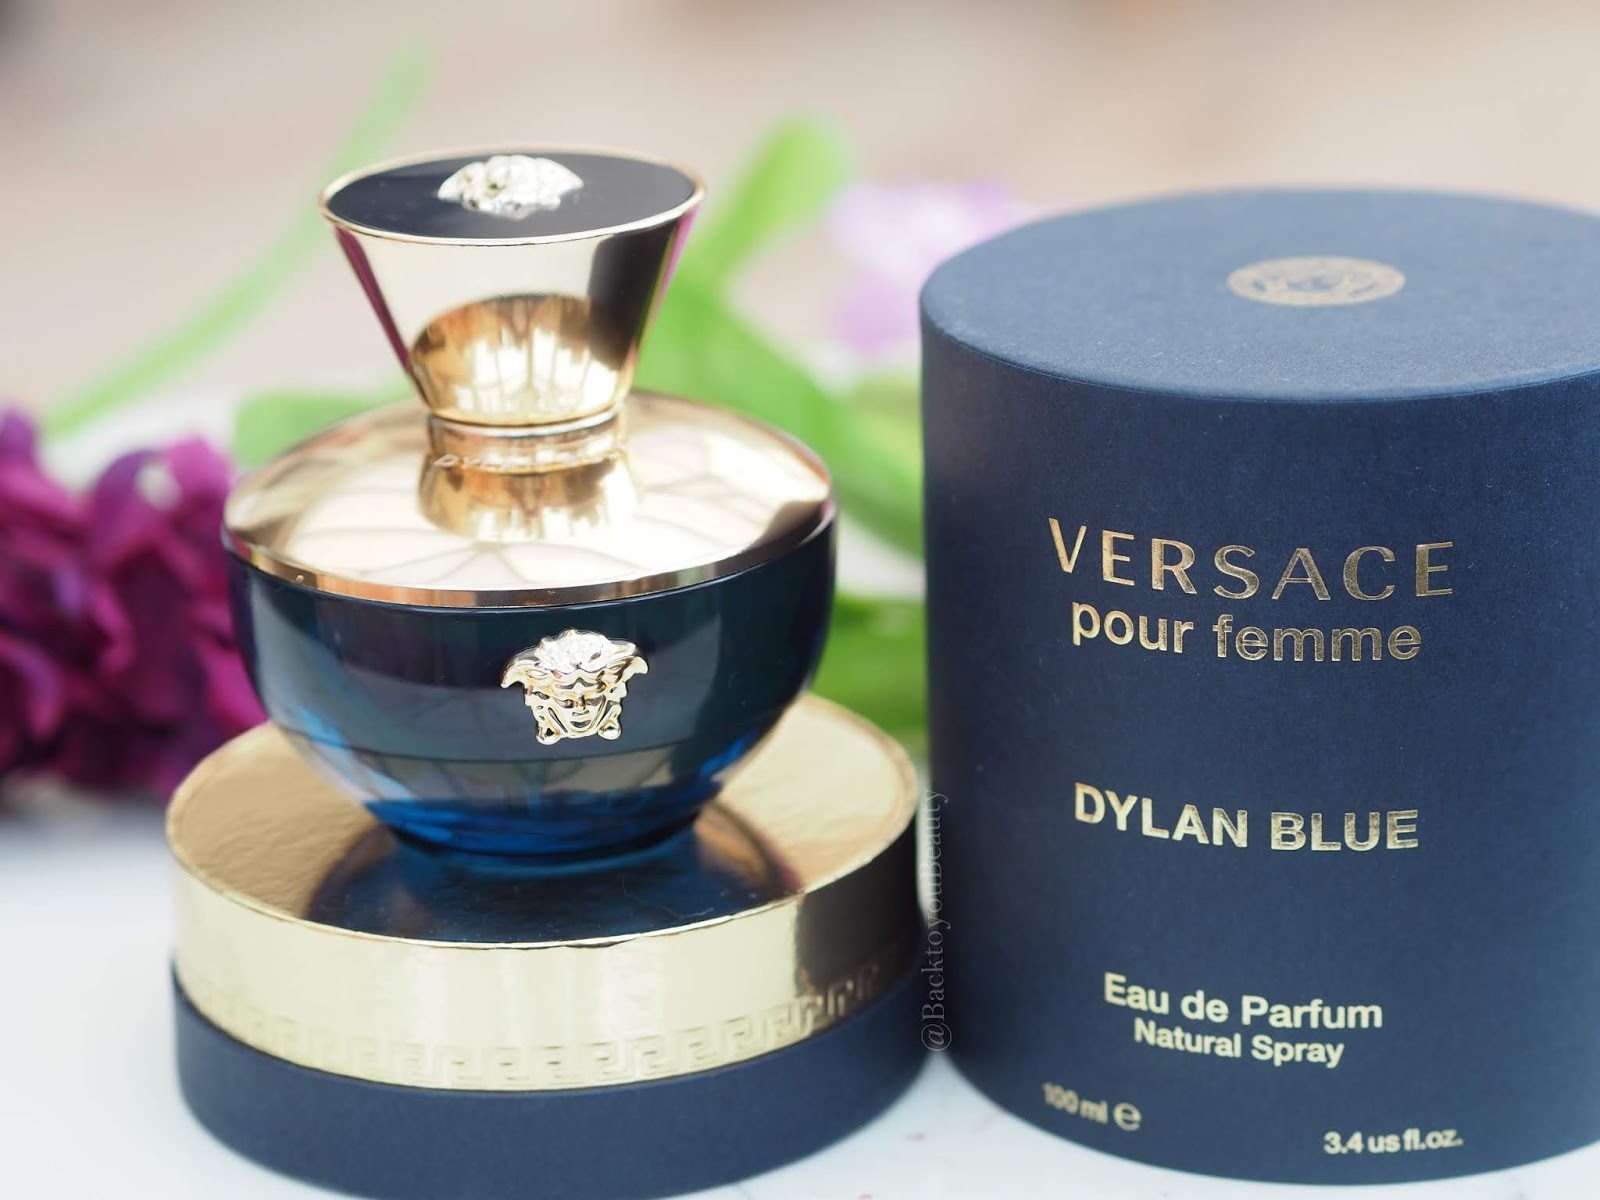 Versace Por Femme Dylan Blue, the ultimate gift of luxury fragrance